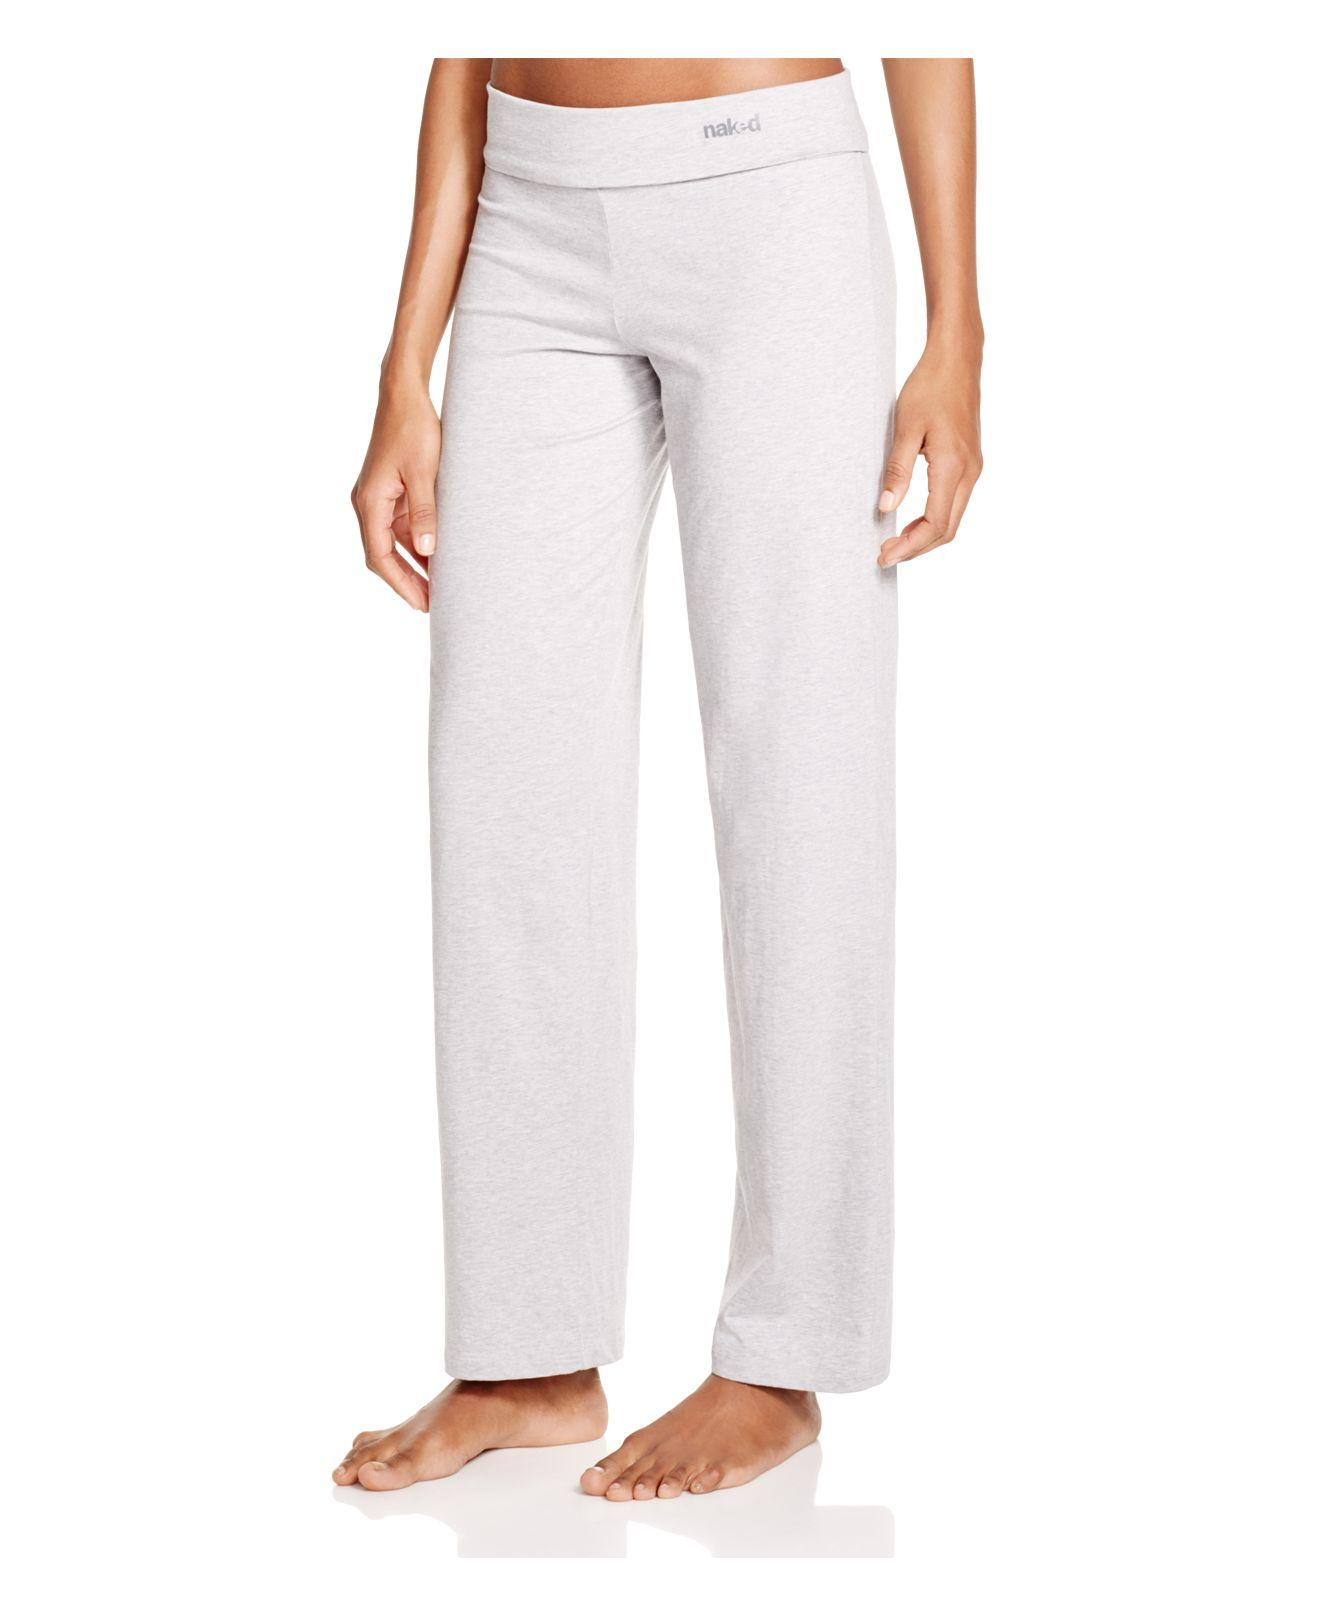 Naked Stretch Jersey Yoga Pants In Gray  Lyst-8900